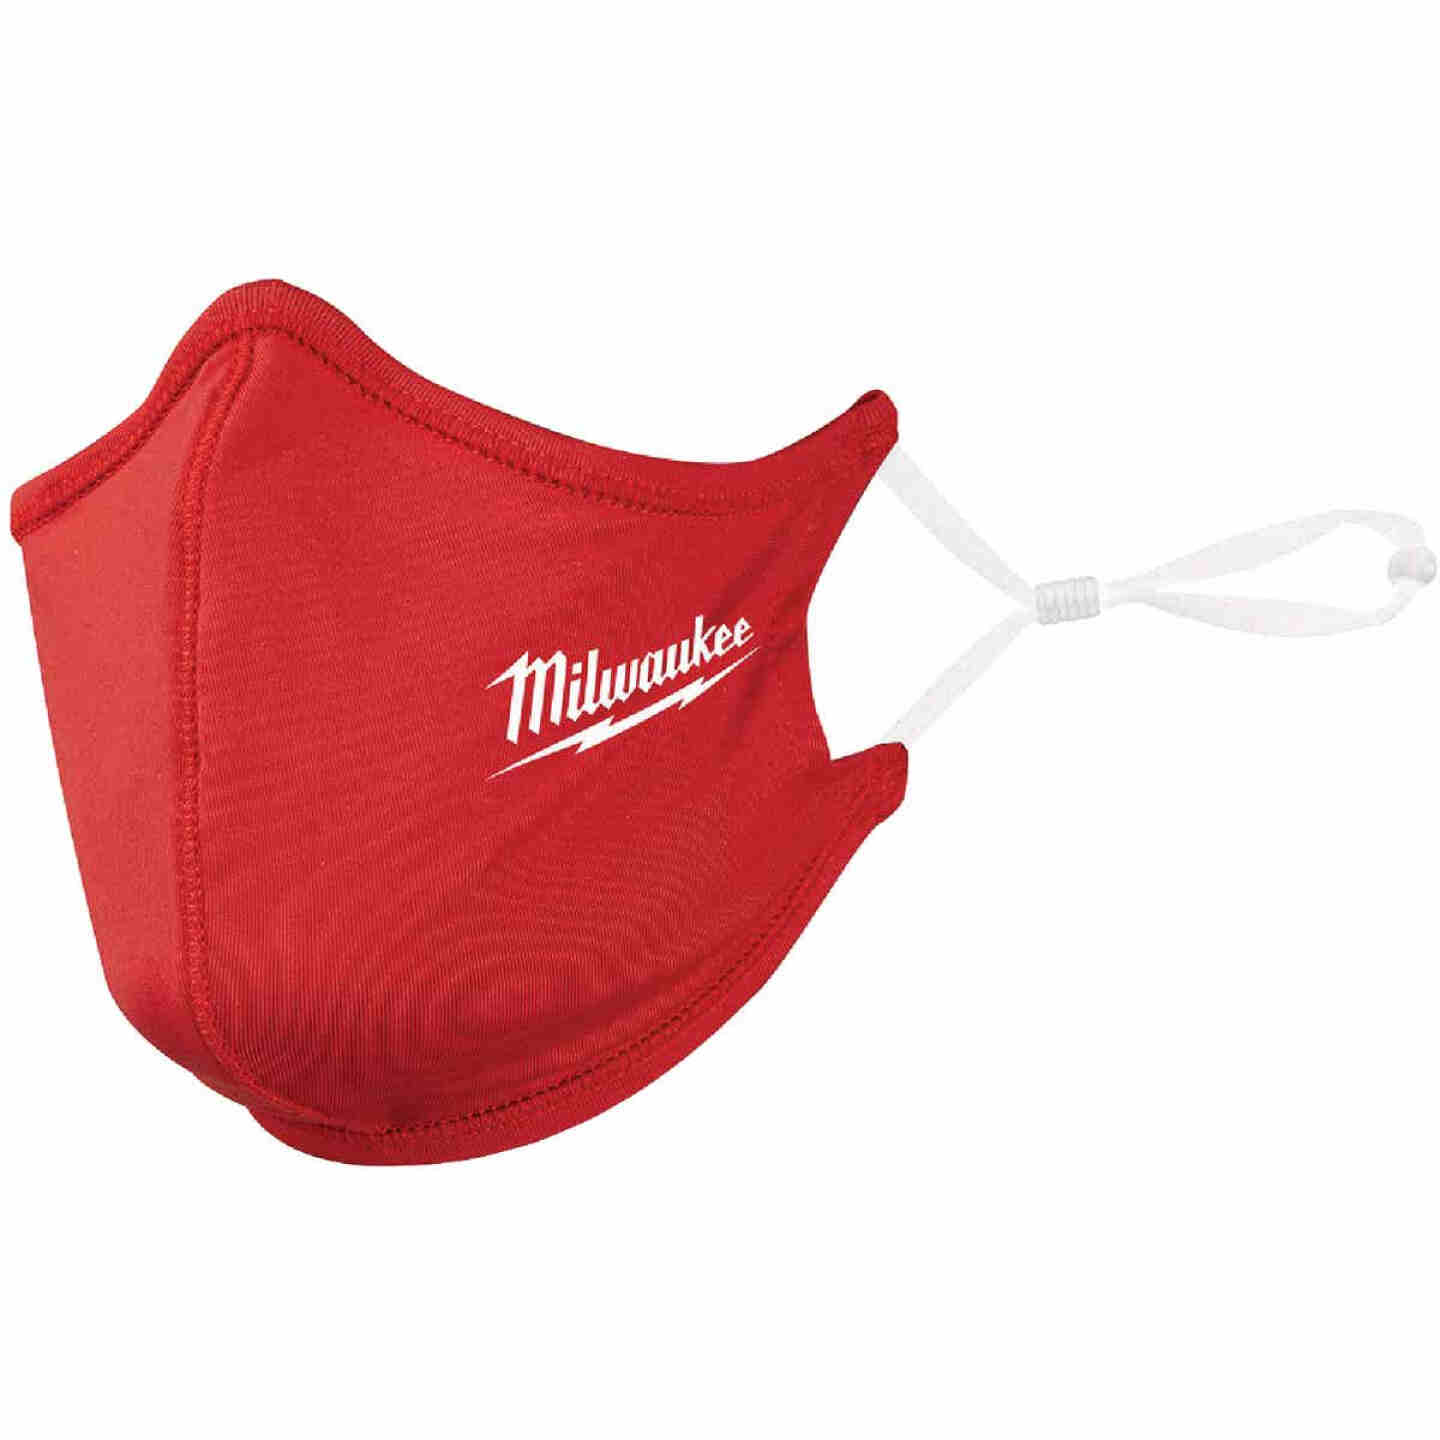 Milwaukee Red 2-Layer Washable Dust & Face Mask Image 1